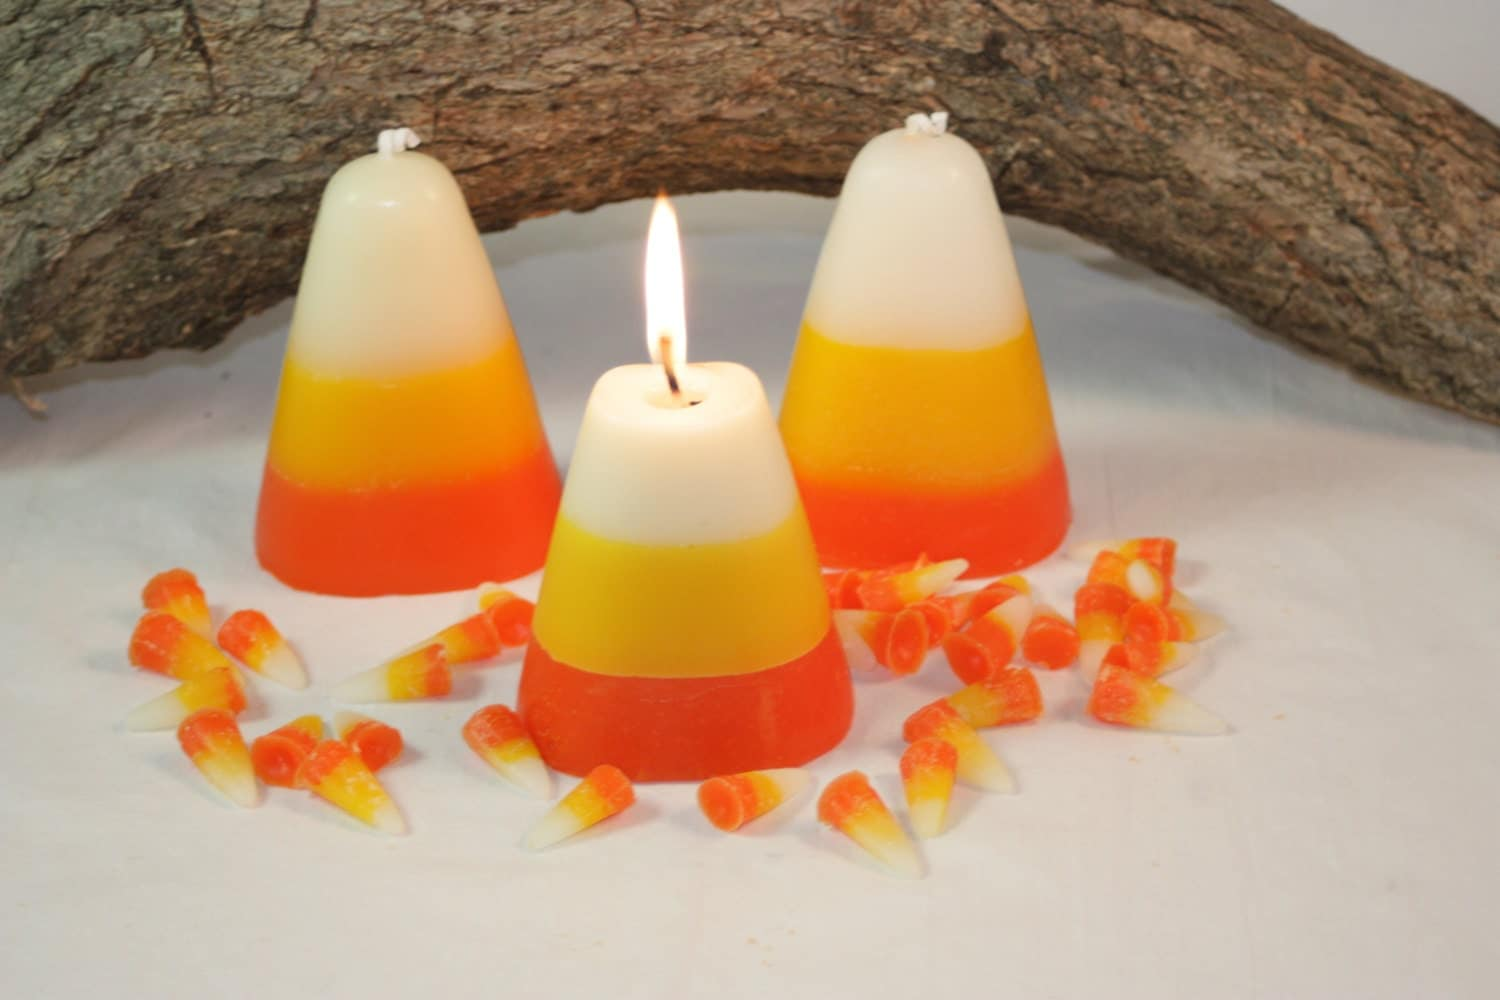 zoom - Candy Corn Halloween Decorations